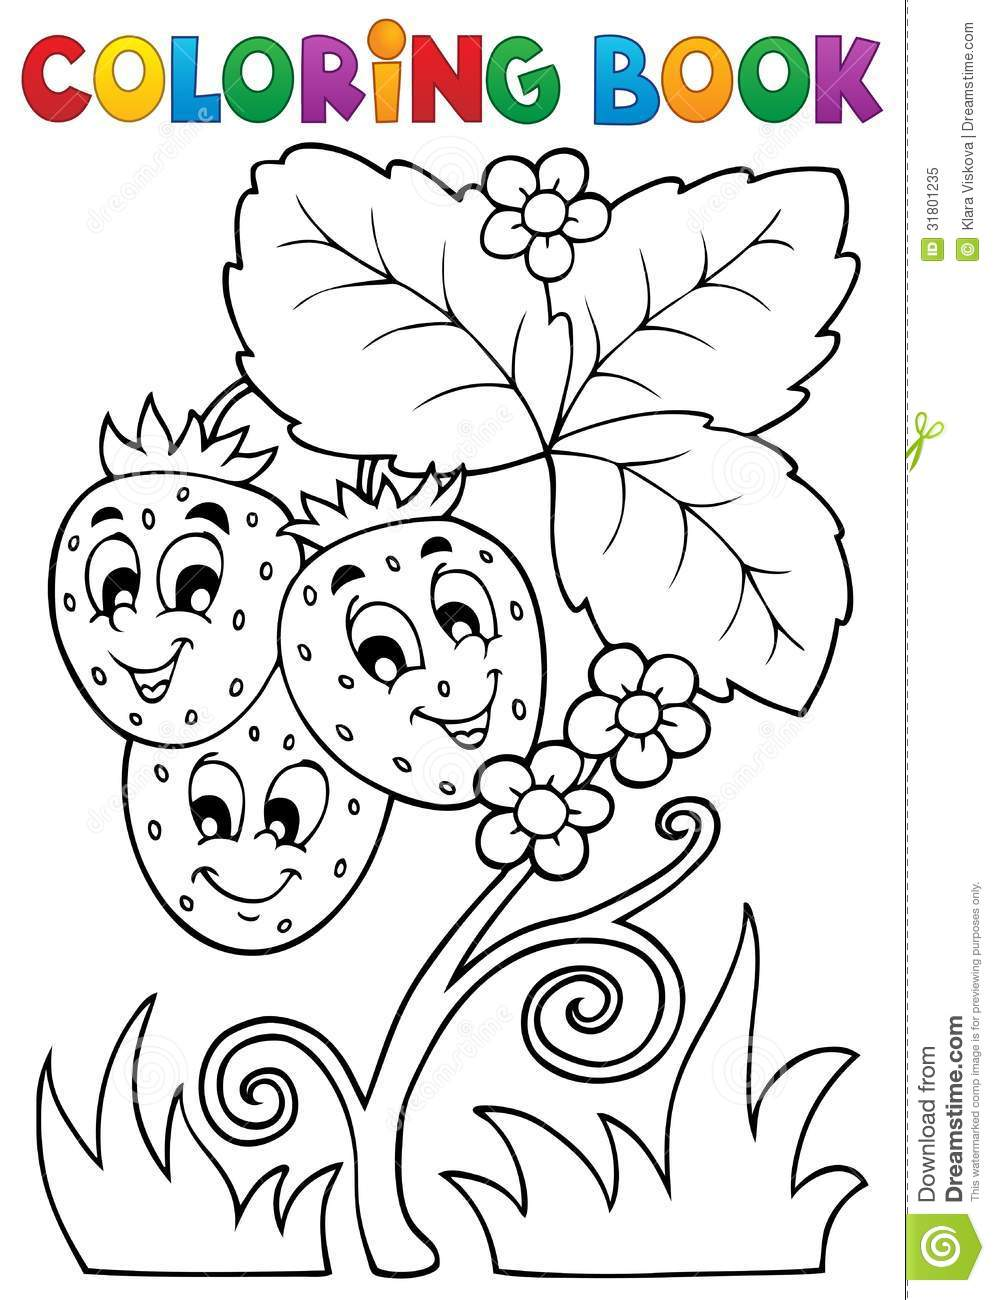 Coloring Book Fruit Theme 4 Stock Vector Image 31801235